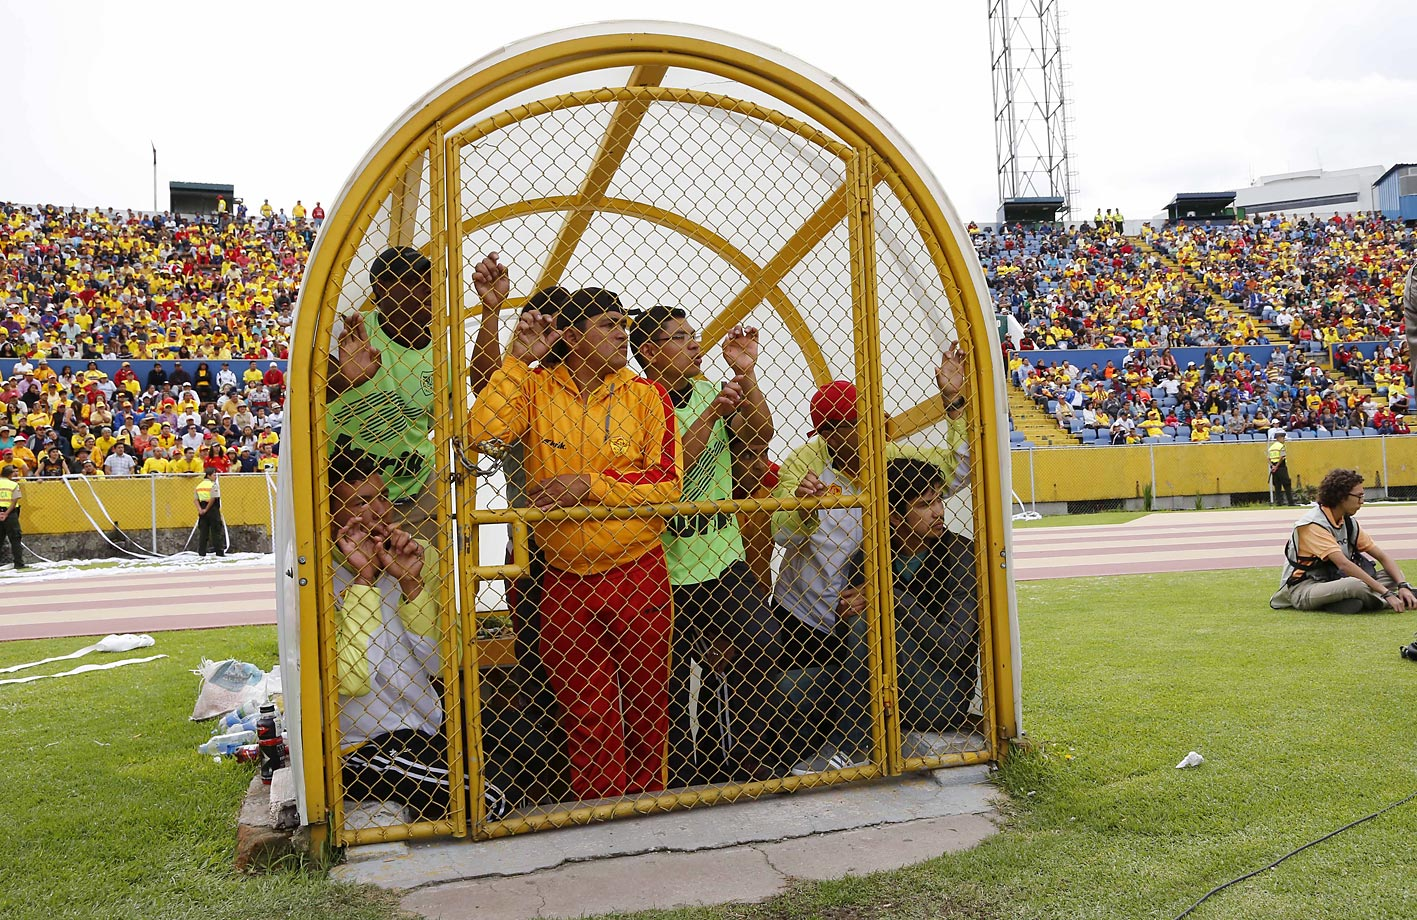 Stadium assistants watch a game between the Aucas and Liga de Portoviejo from inside a gated entry on the sideline in Quito, Ecuador.